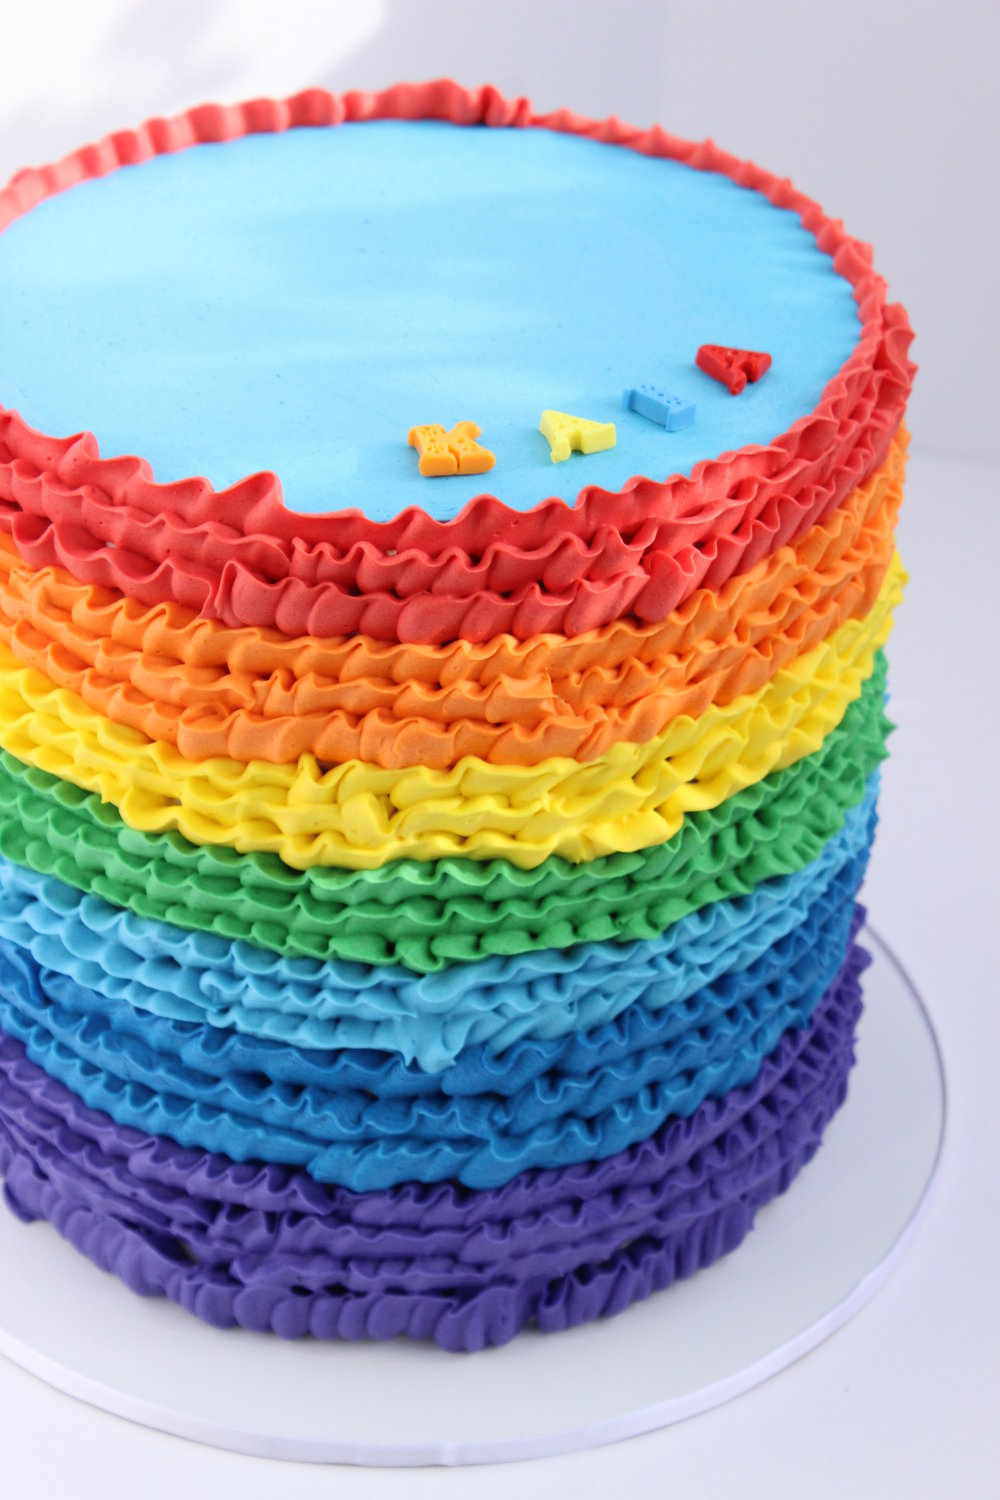 Copy of rainbow buttercream ruffled birthday cake Hilo Hawaii Big Island Kailua Kona